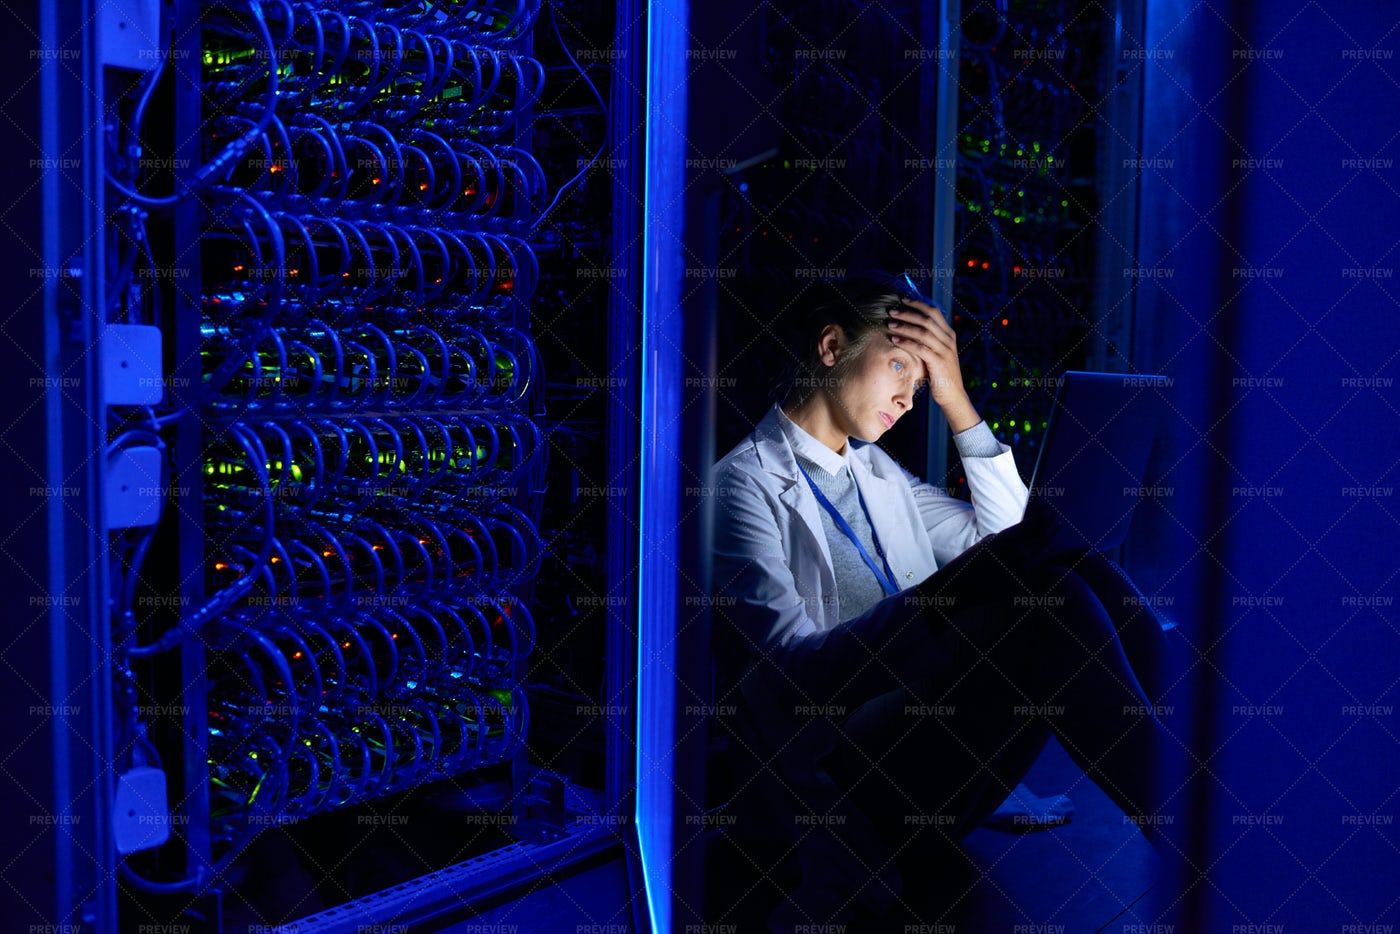 Network Engineer Working At Night: Stock Photos